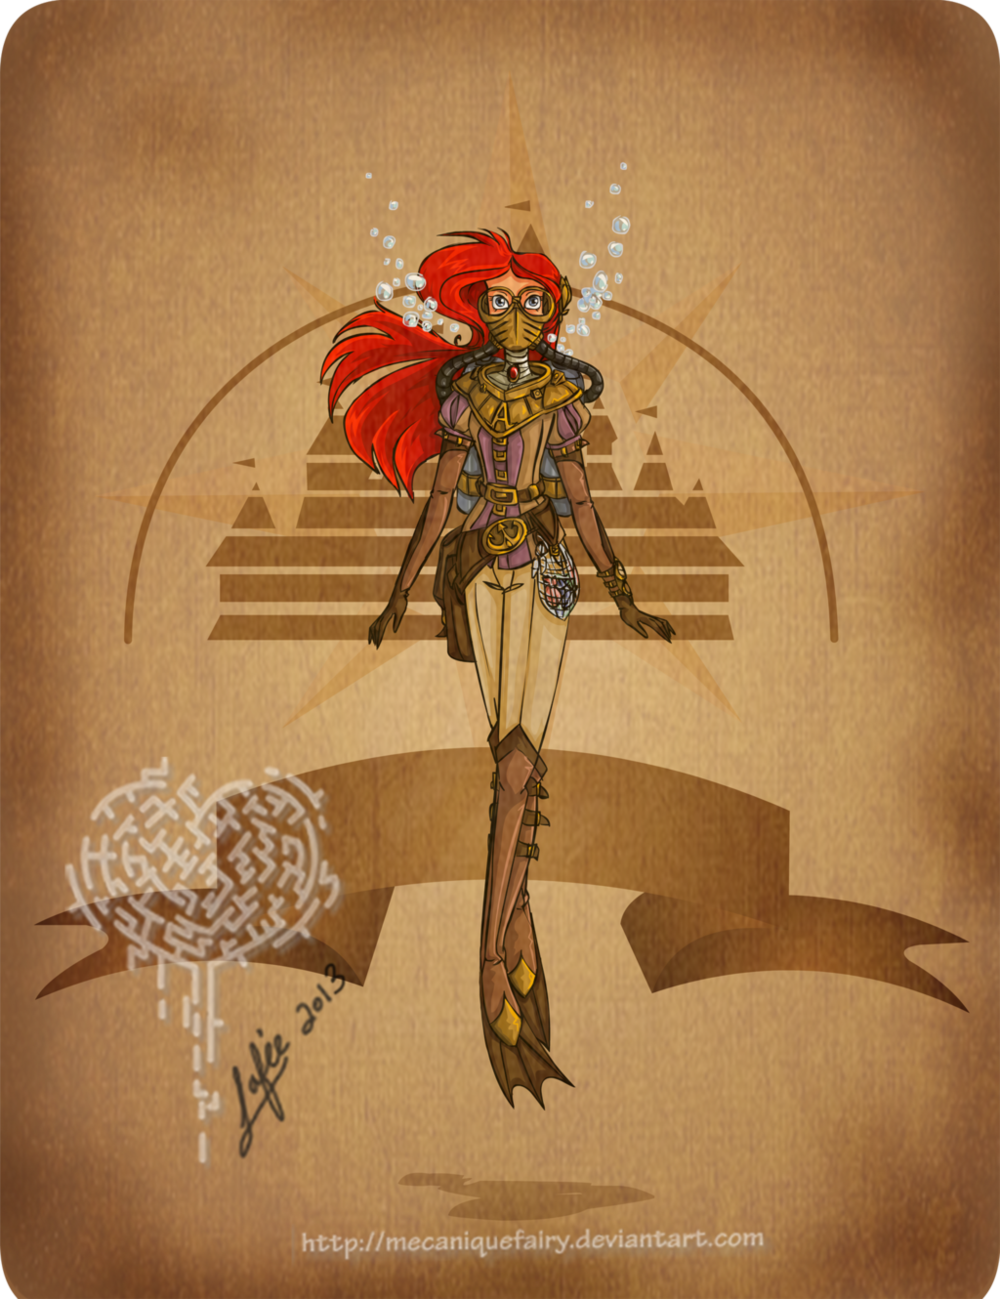 disney_steampunk__ariel_by_mecaniquefairy-d66joy4.png